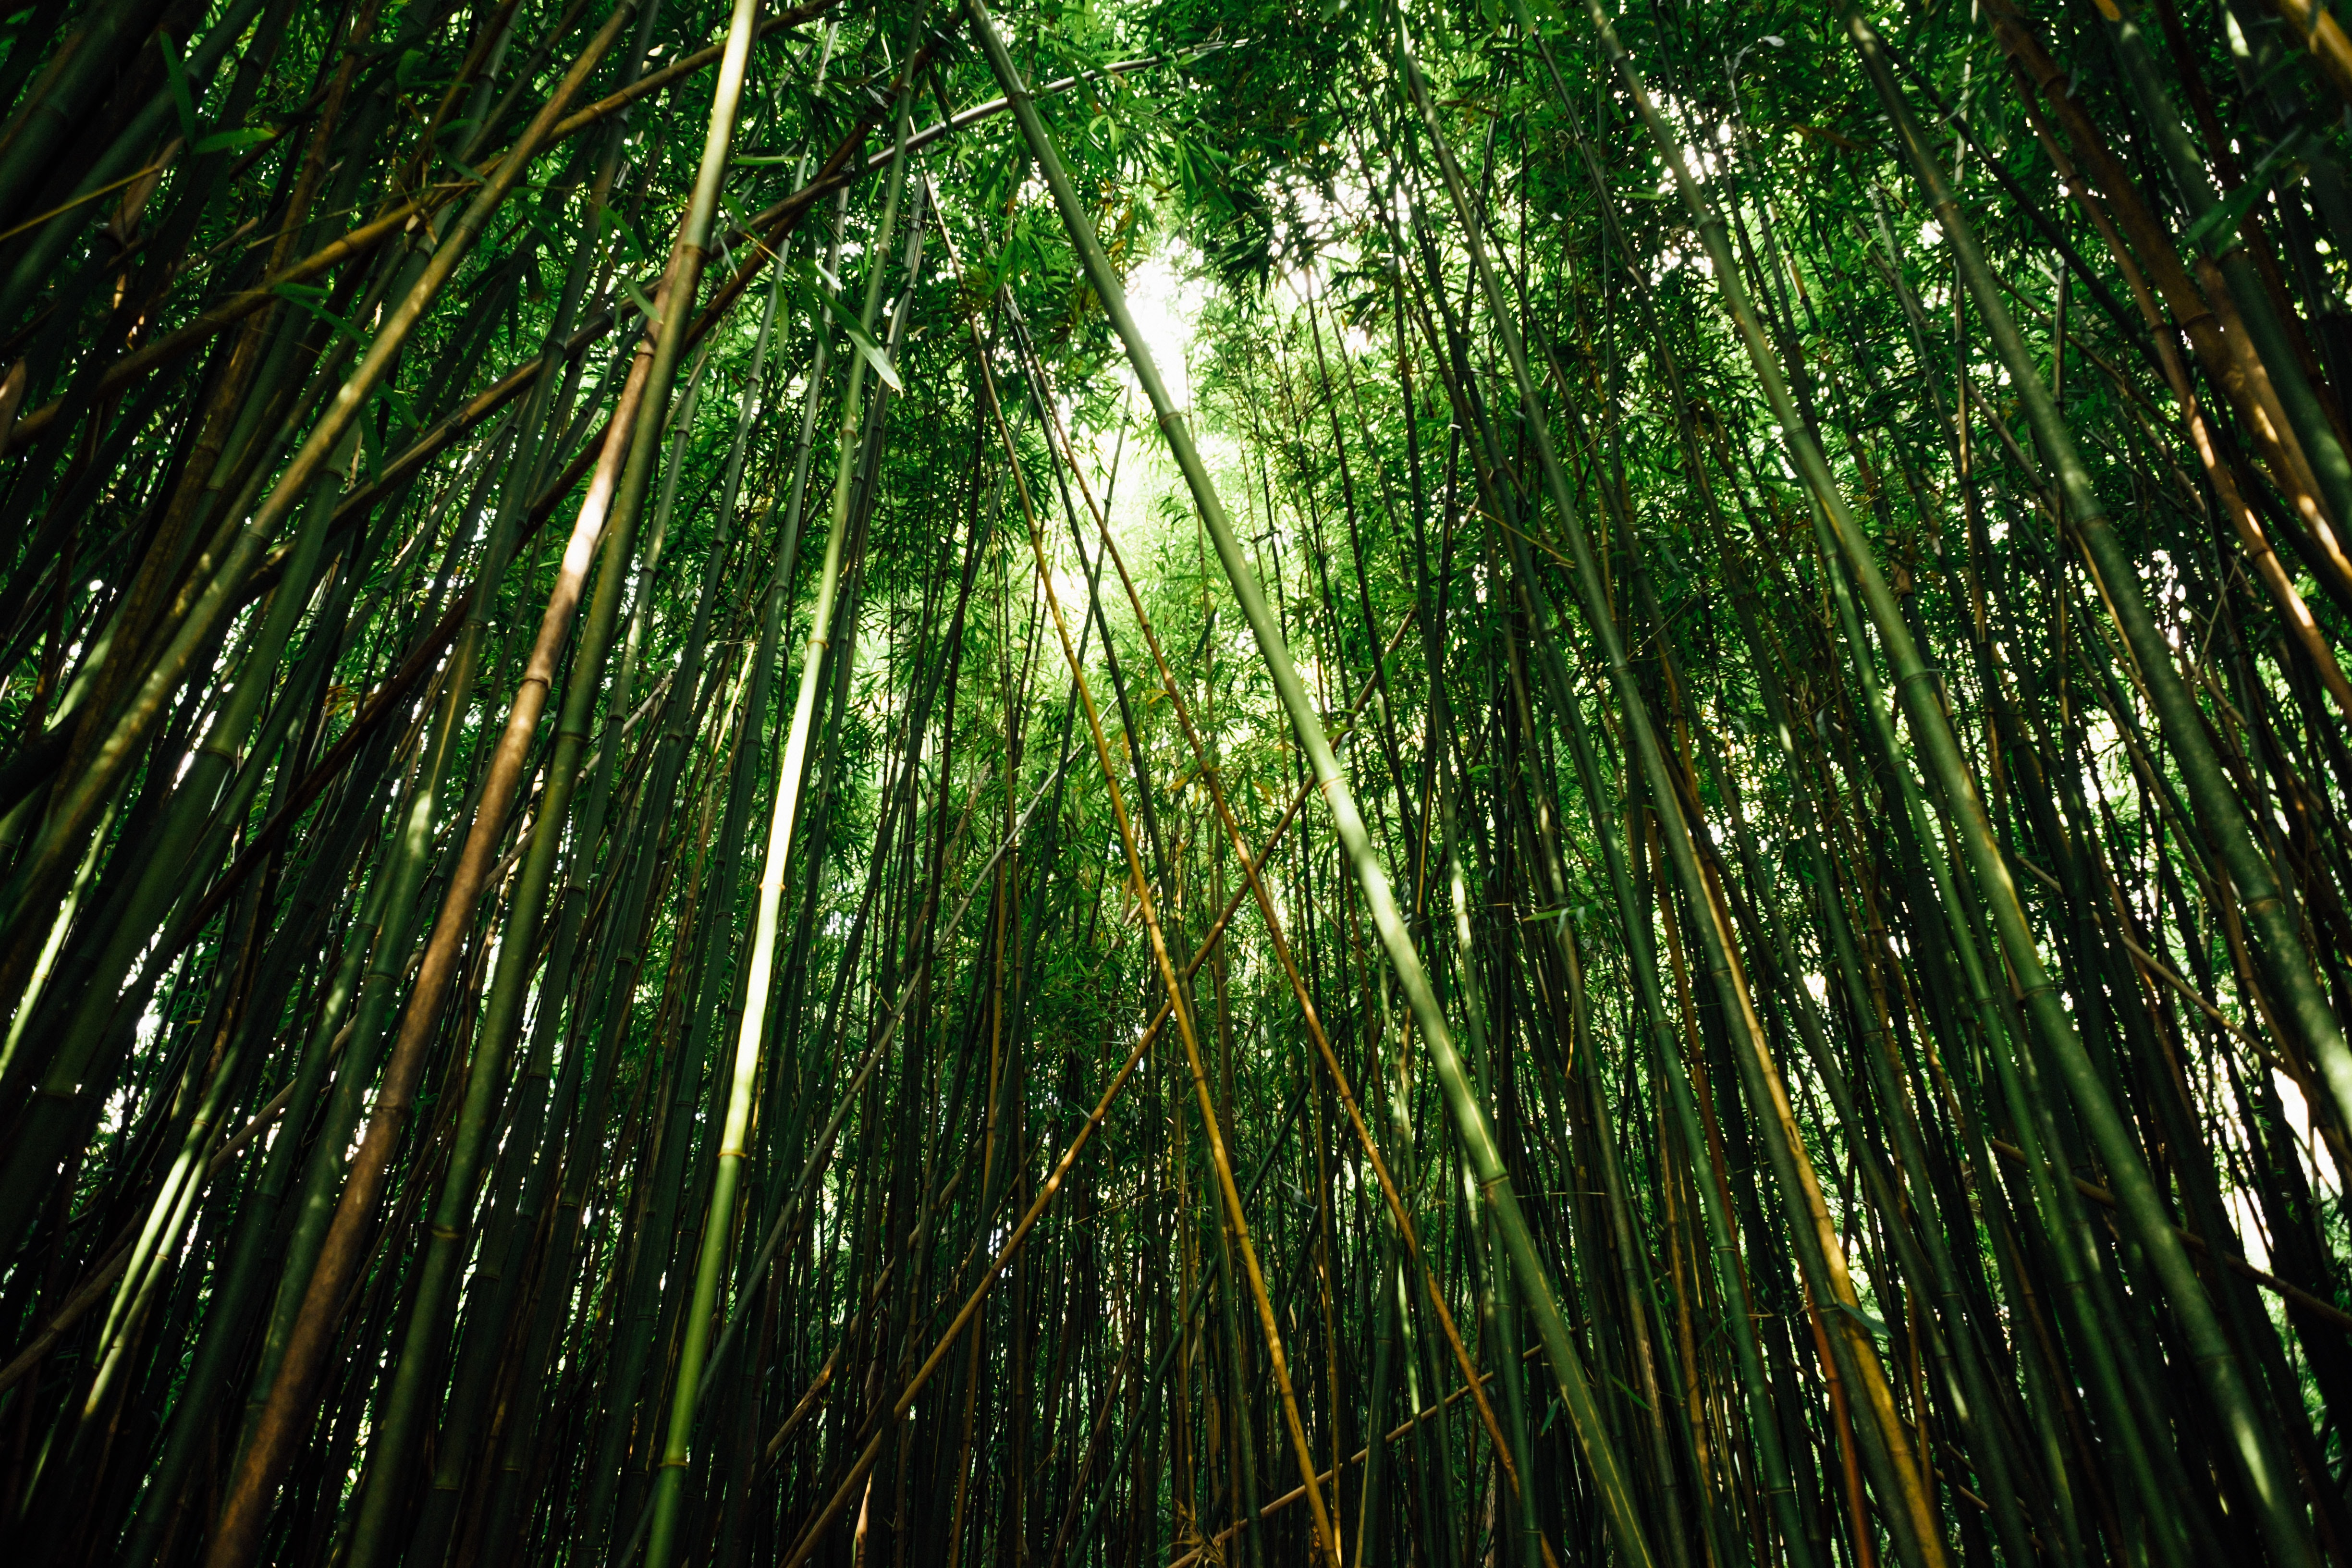 Japanese Bamboos in worm's eye view photography